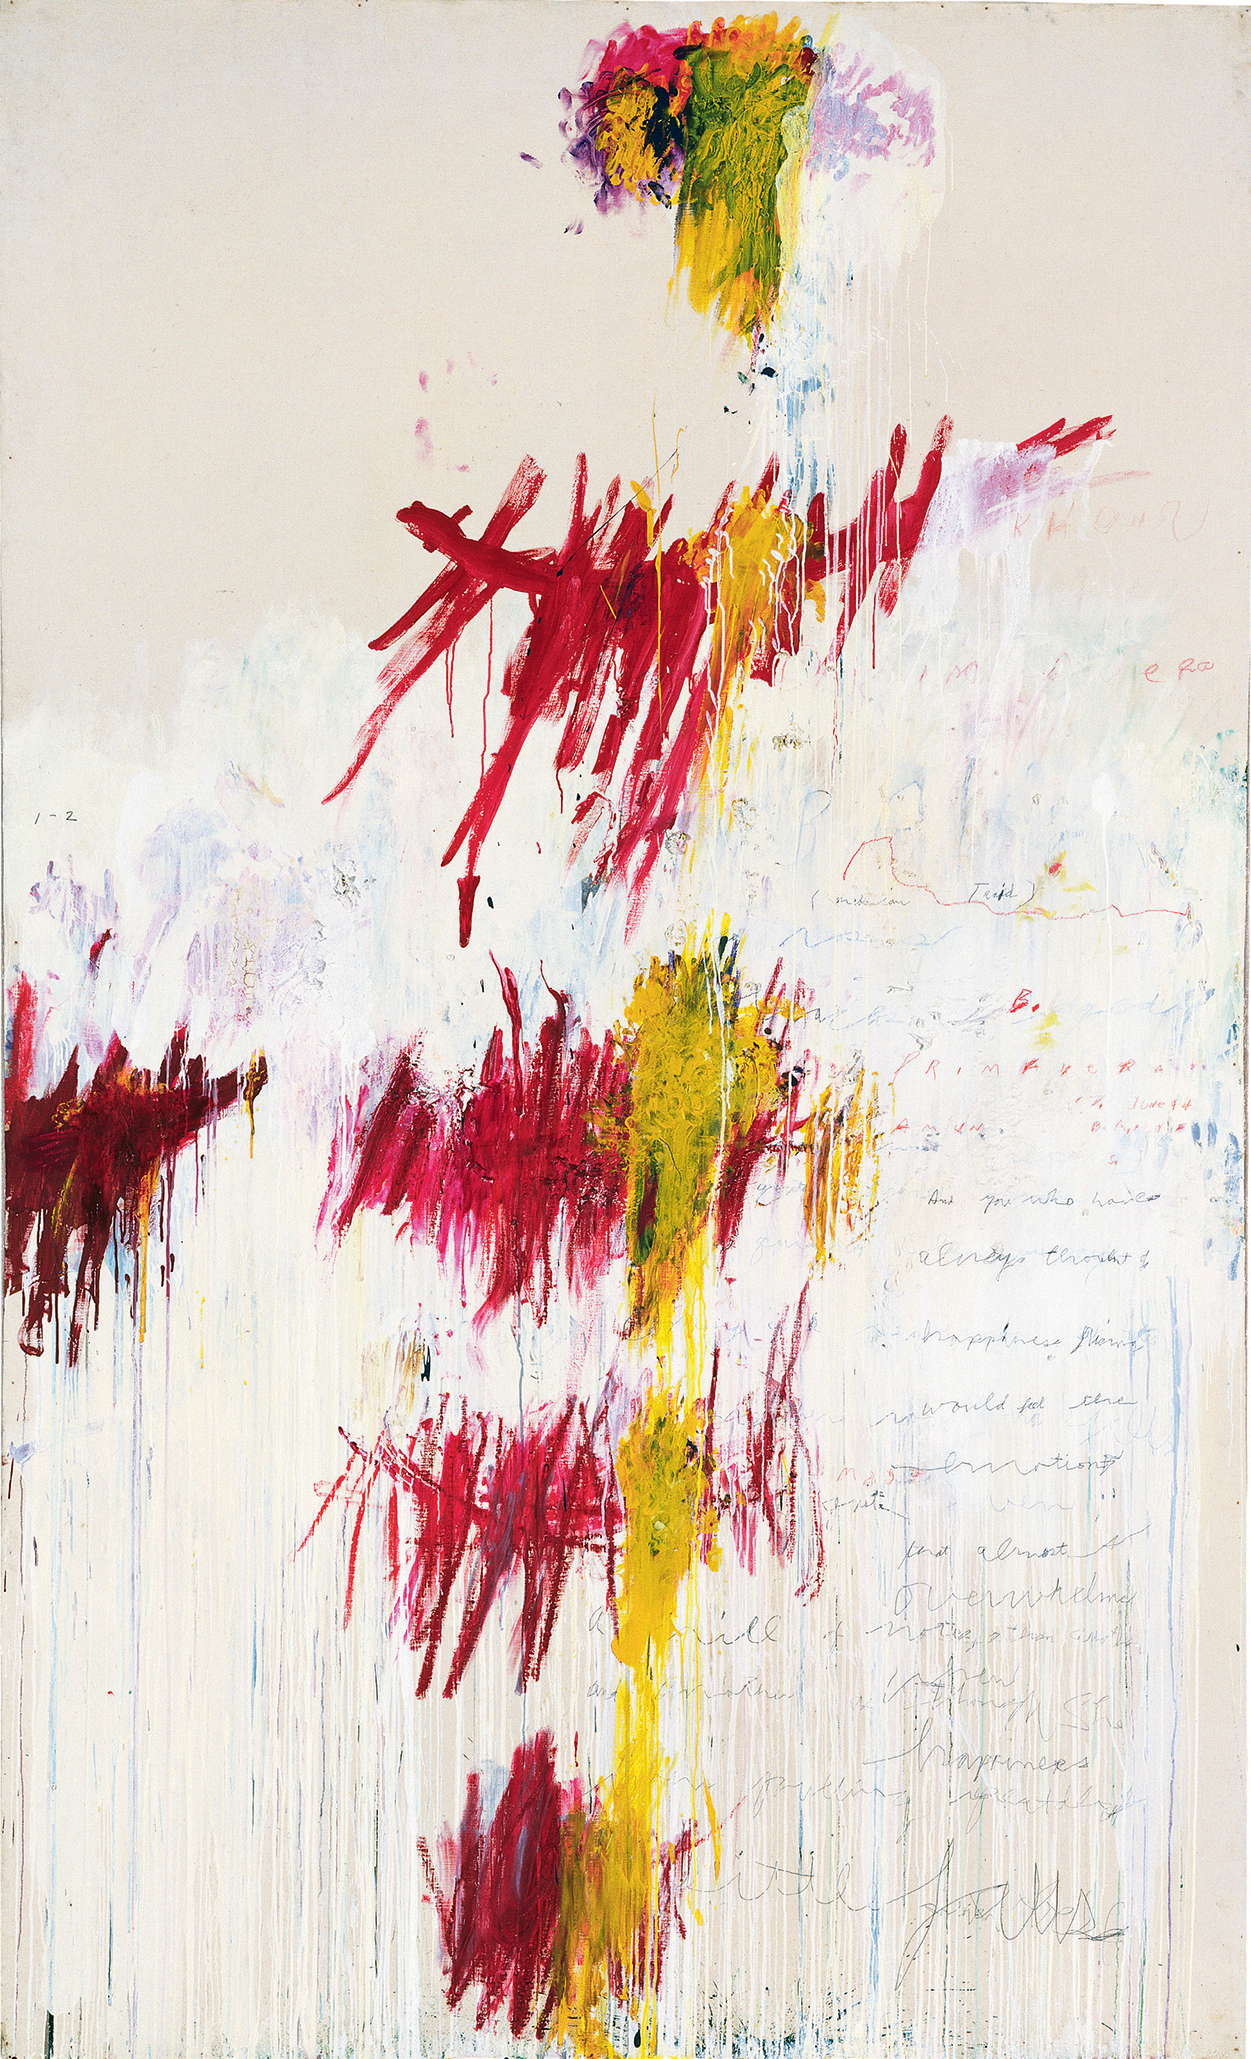 Quattro Stagioni: Primavera (1993–95), by Cy Twombly. Acrylic, oil, colored crayon and pencil on canvas, 313.2 x 189.5 cm. Tate, London. © Tate, London 2016.